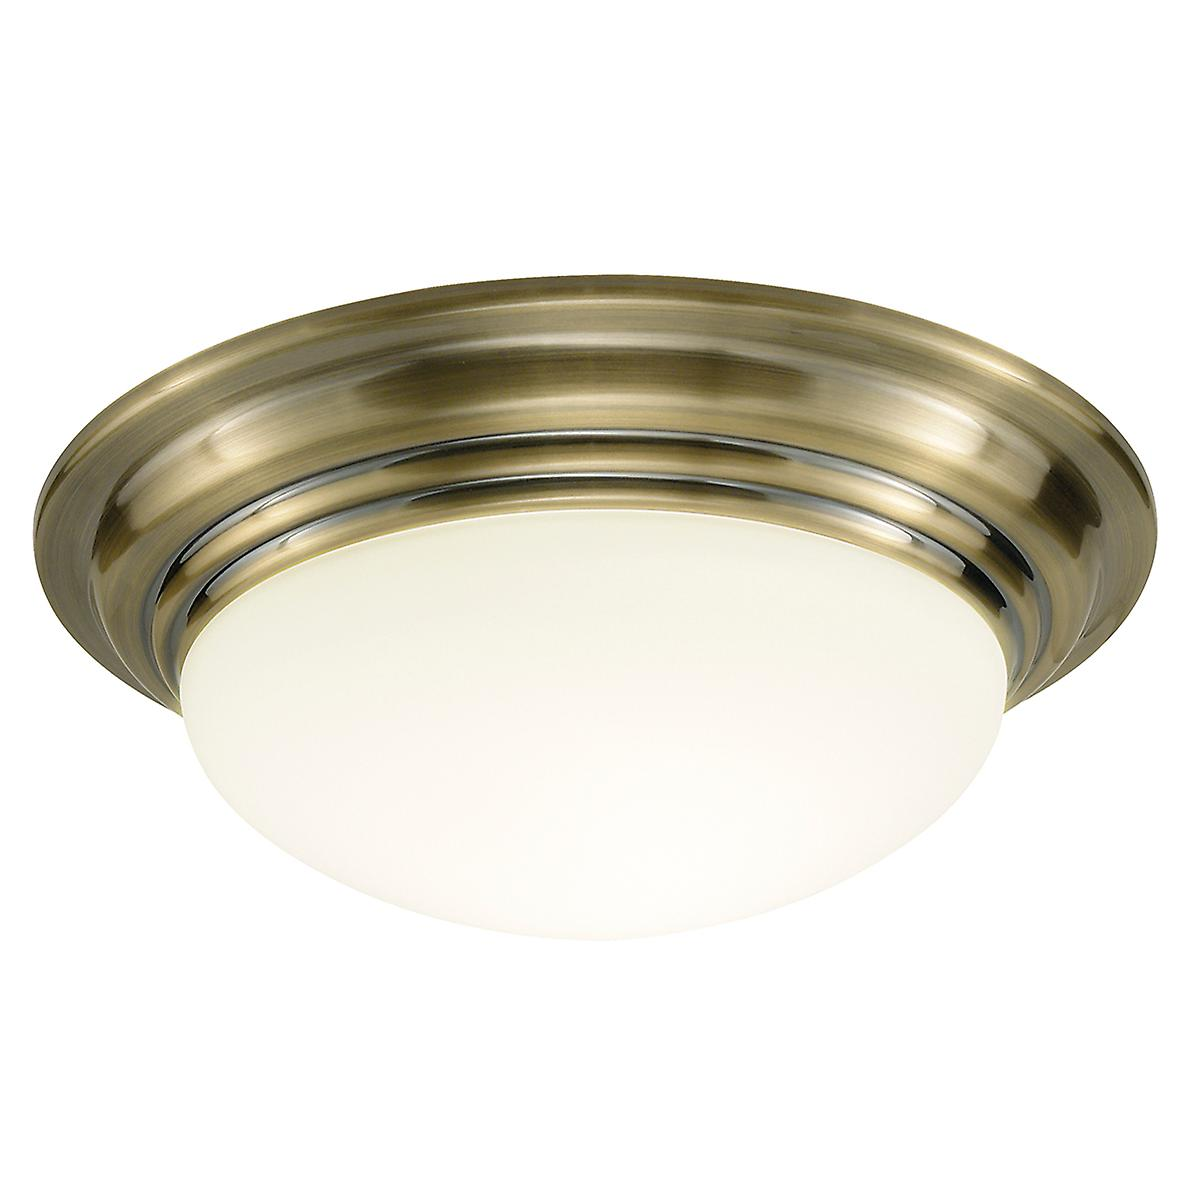 Dar BAR5275 Barclay Traditional Antique Bathroom Flush Ceiling Light - 31cm